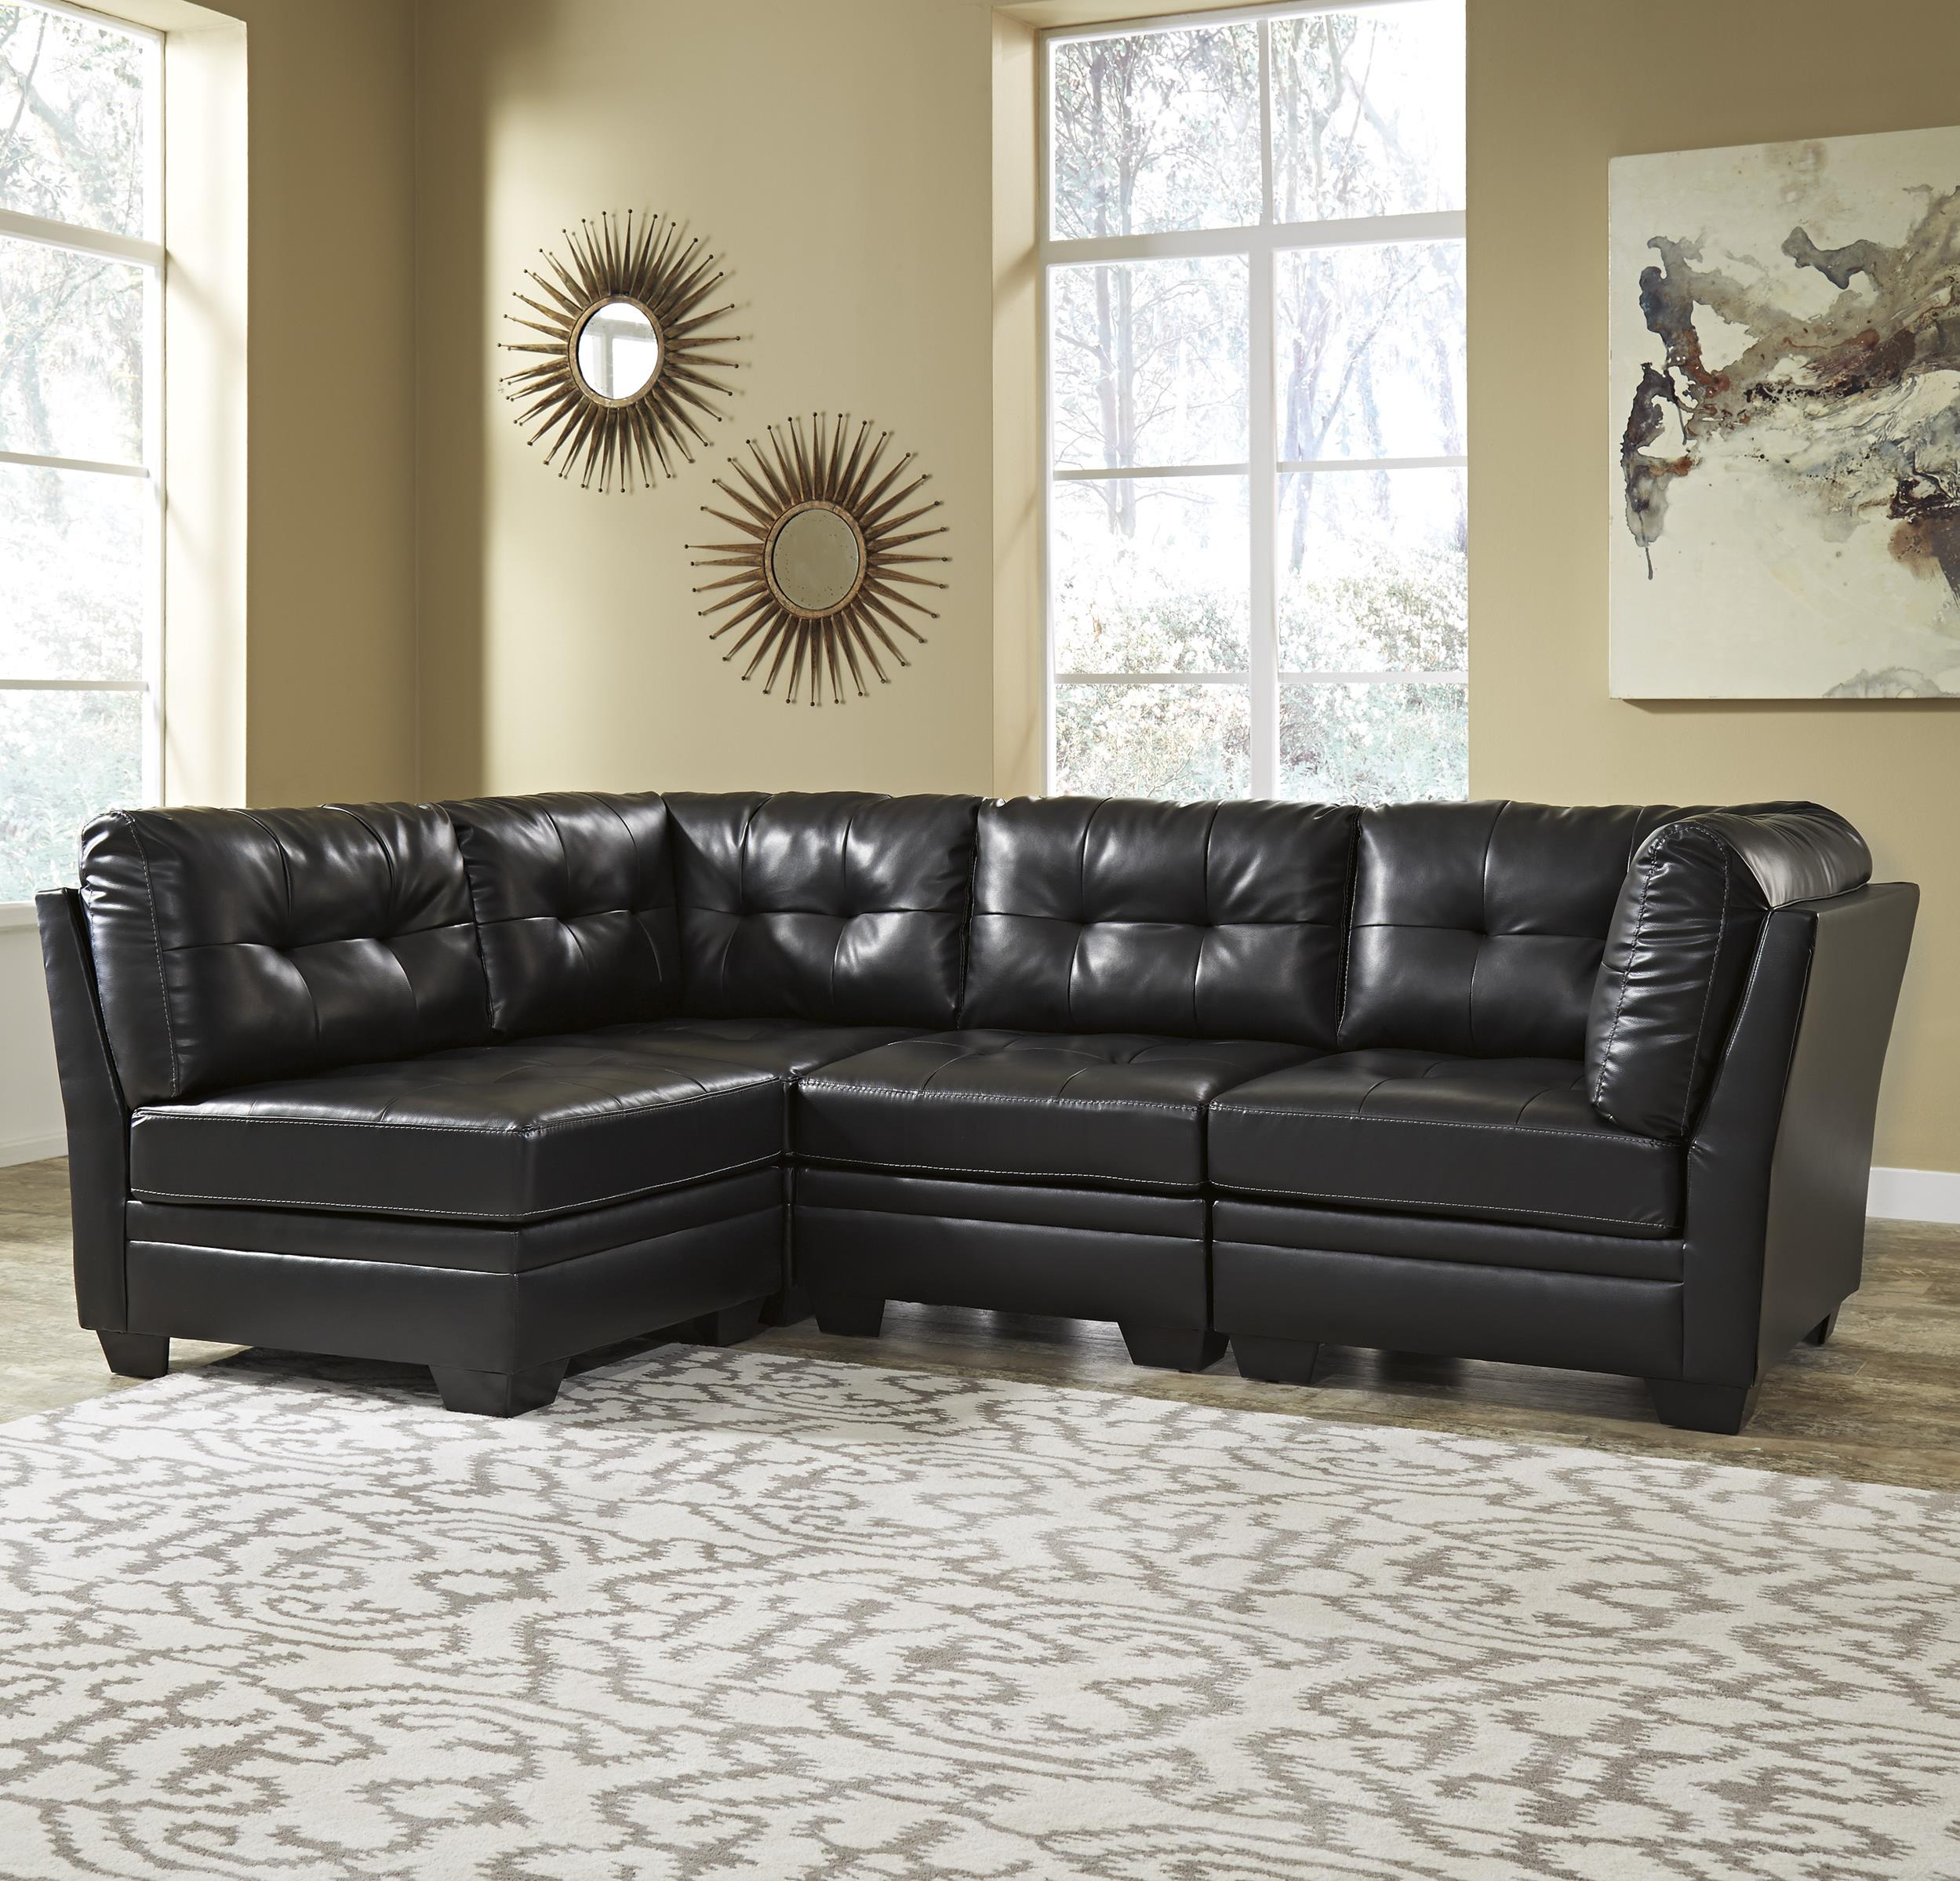 Signature Design by Ashley Khalil DuraBlend® 4-Piece Modular Sectional - Item Number: 6180546x2+2x51